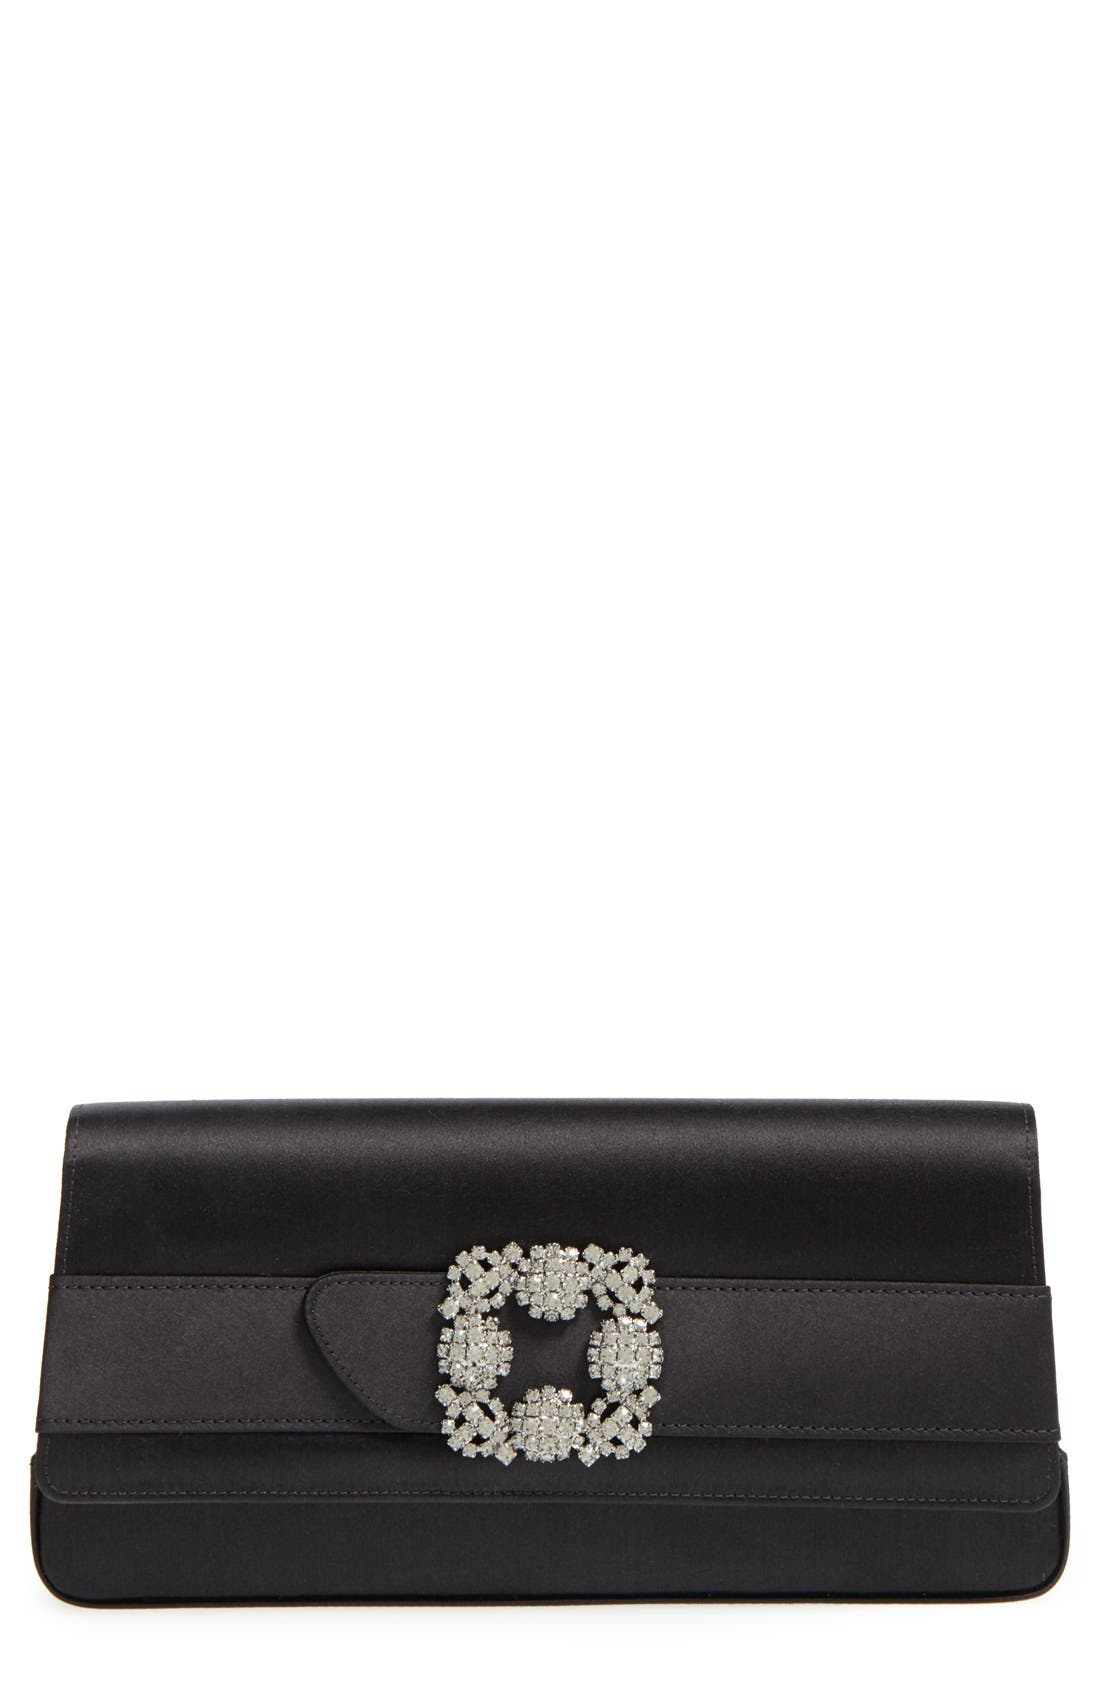 'Gothisi' Clutch,                         Main,                         color, 002